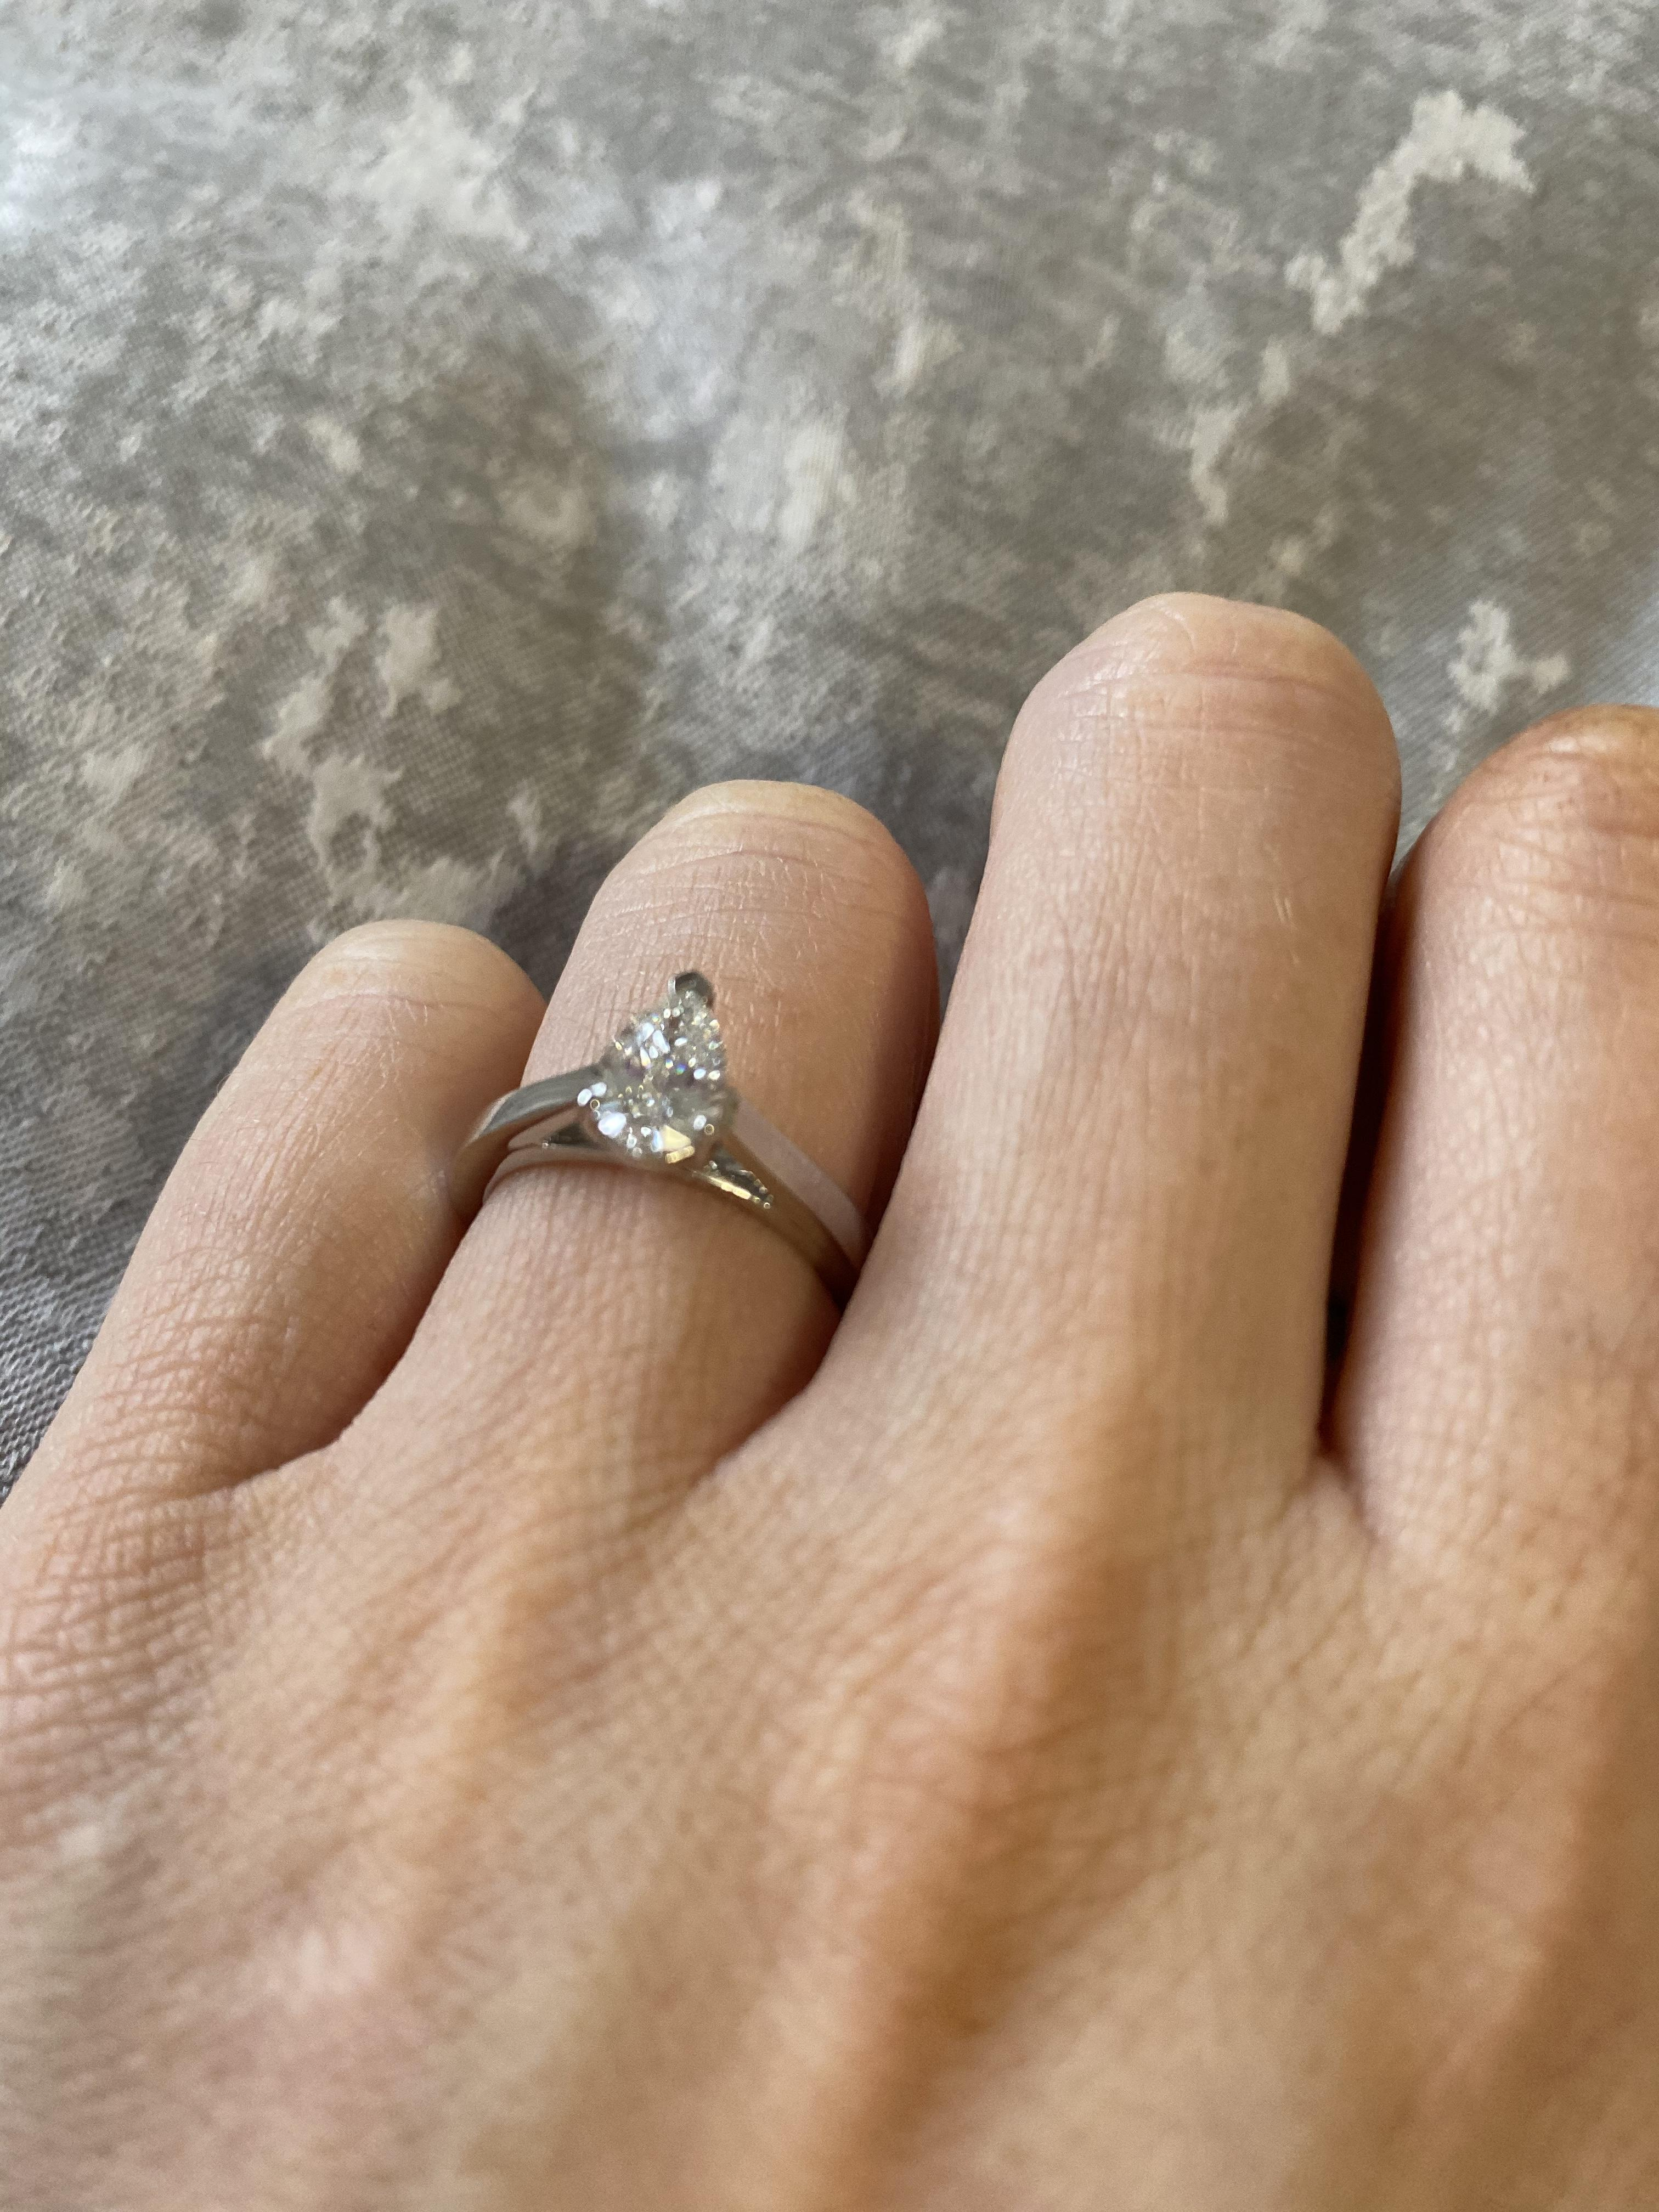 Pear shaped diamond engagement